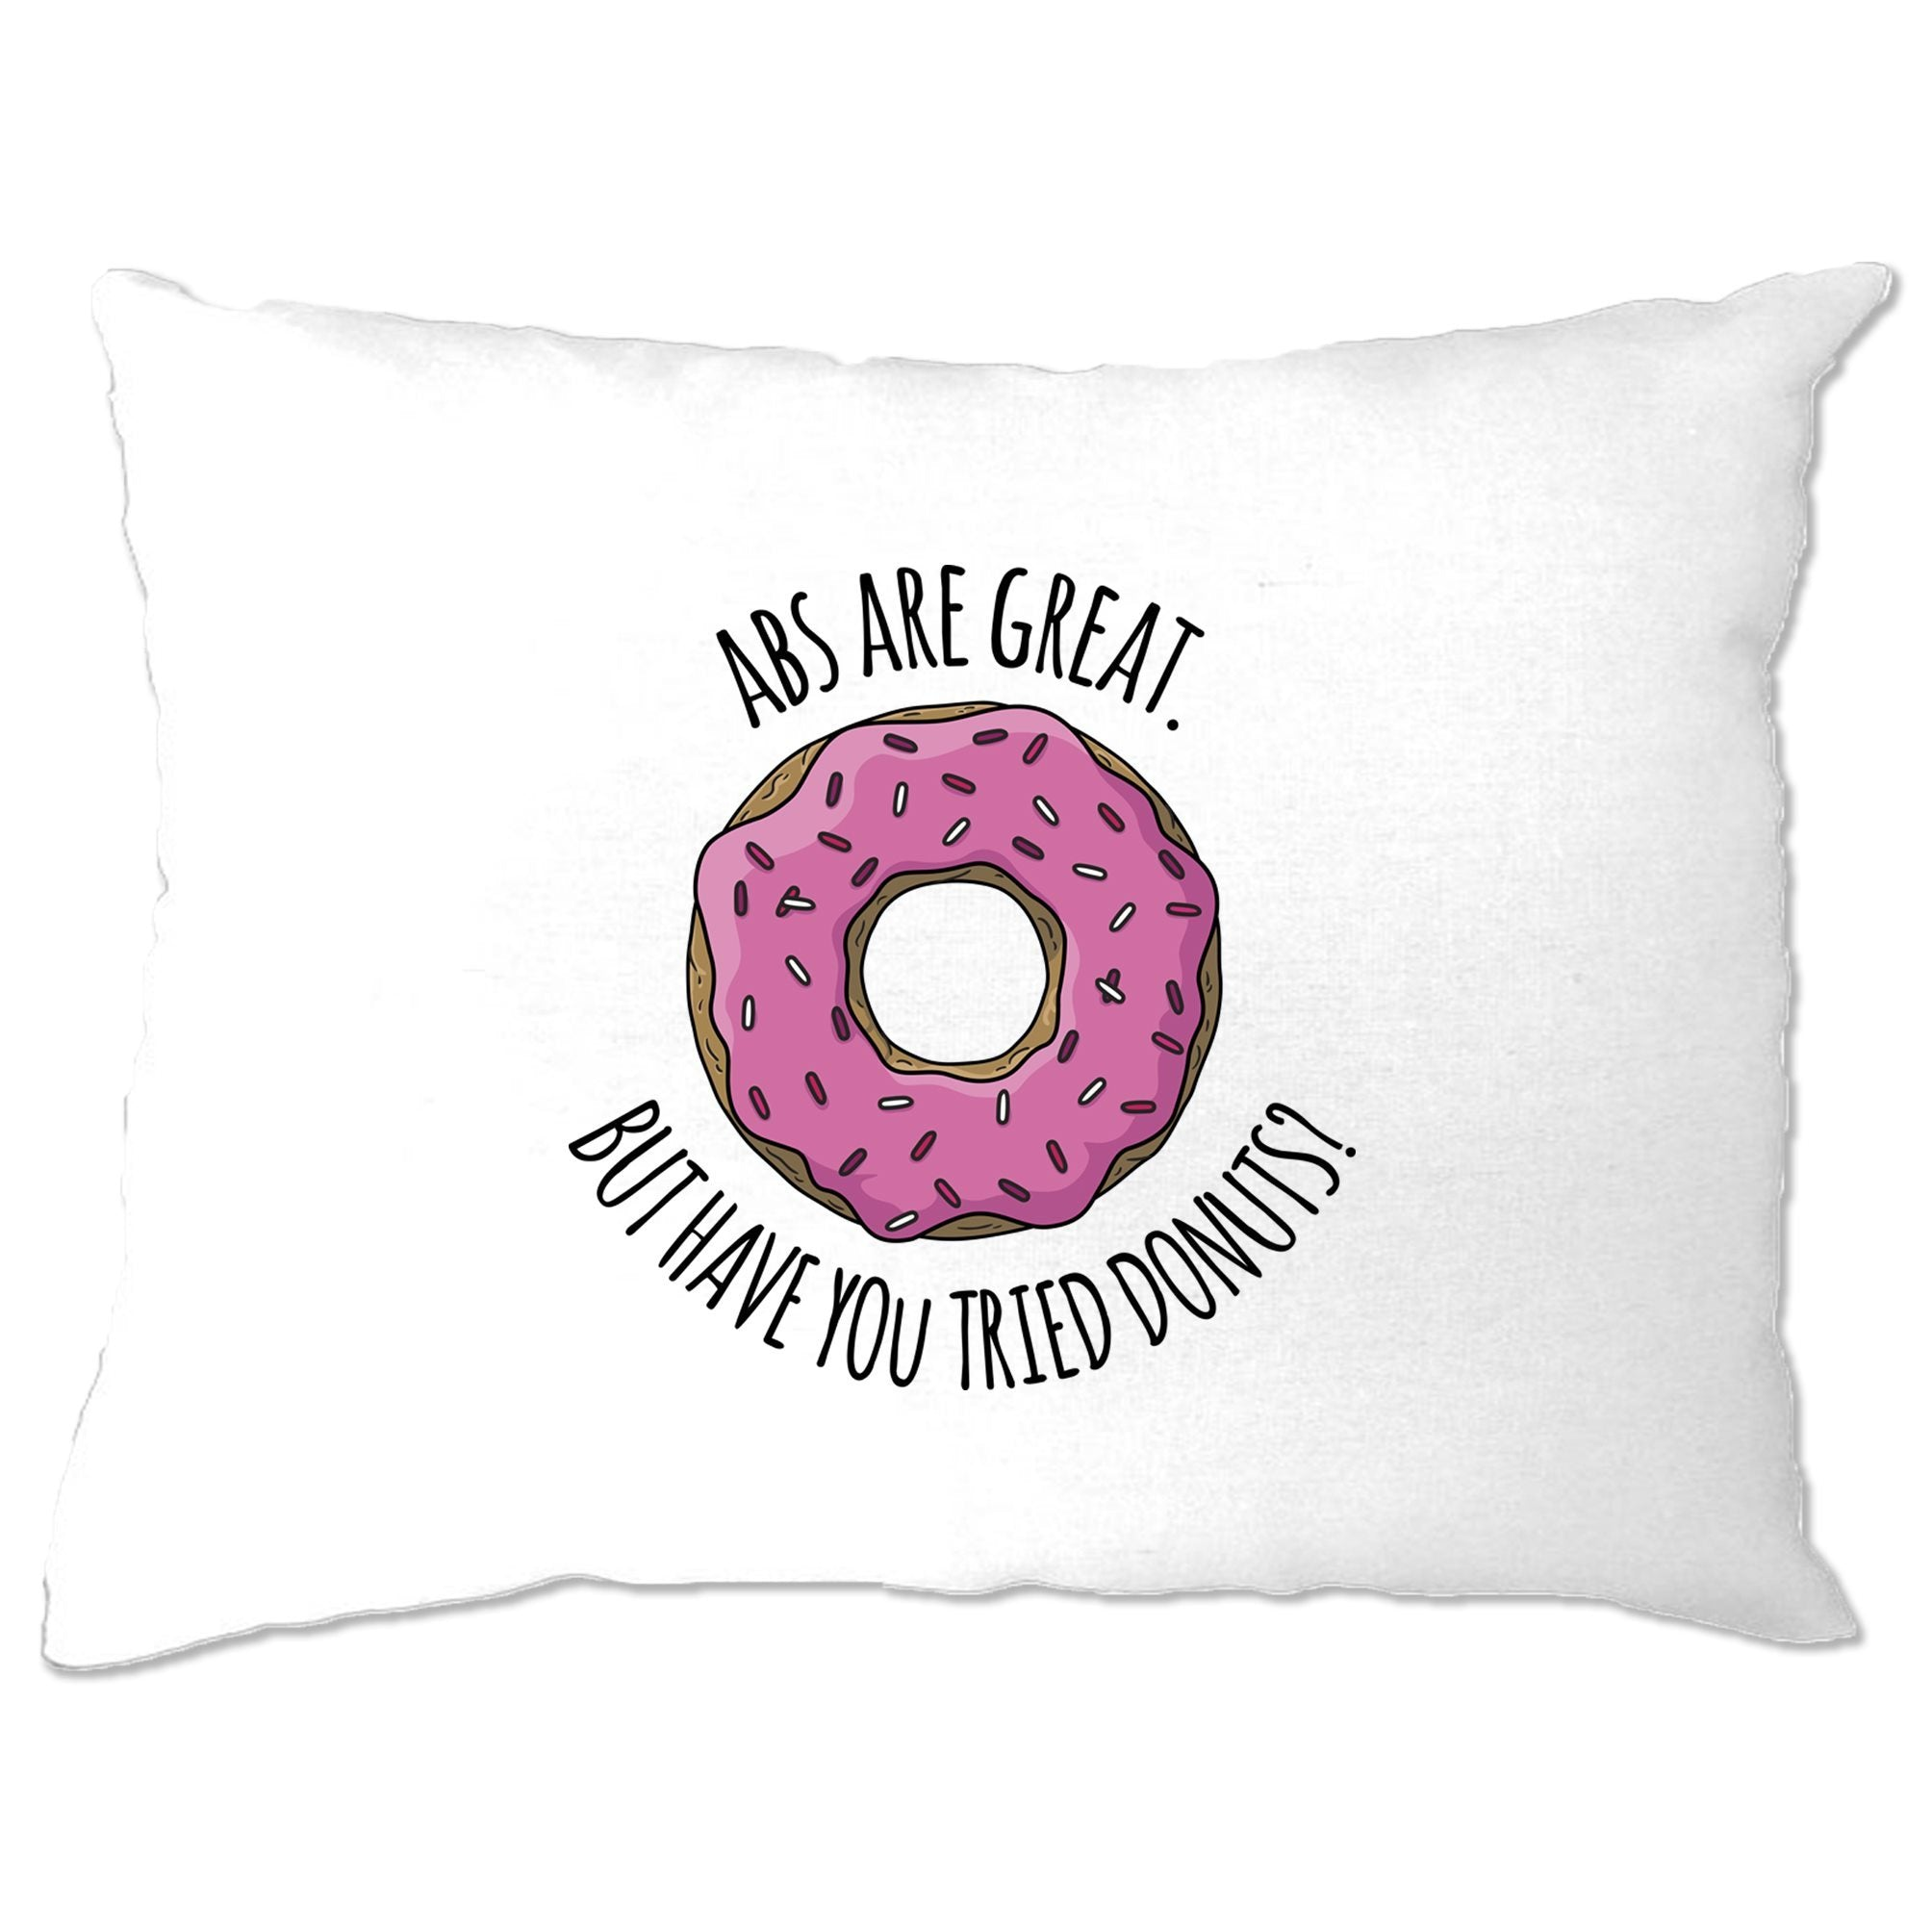 Joke Pillow Case Abs Are Great But Have You Tried Donuts?